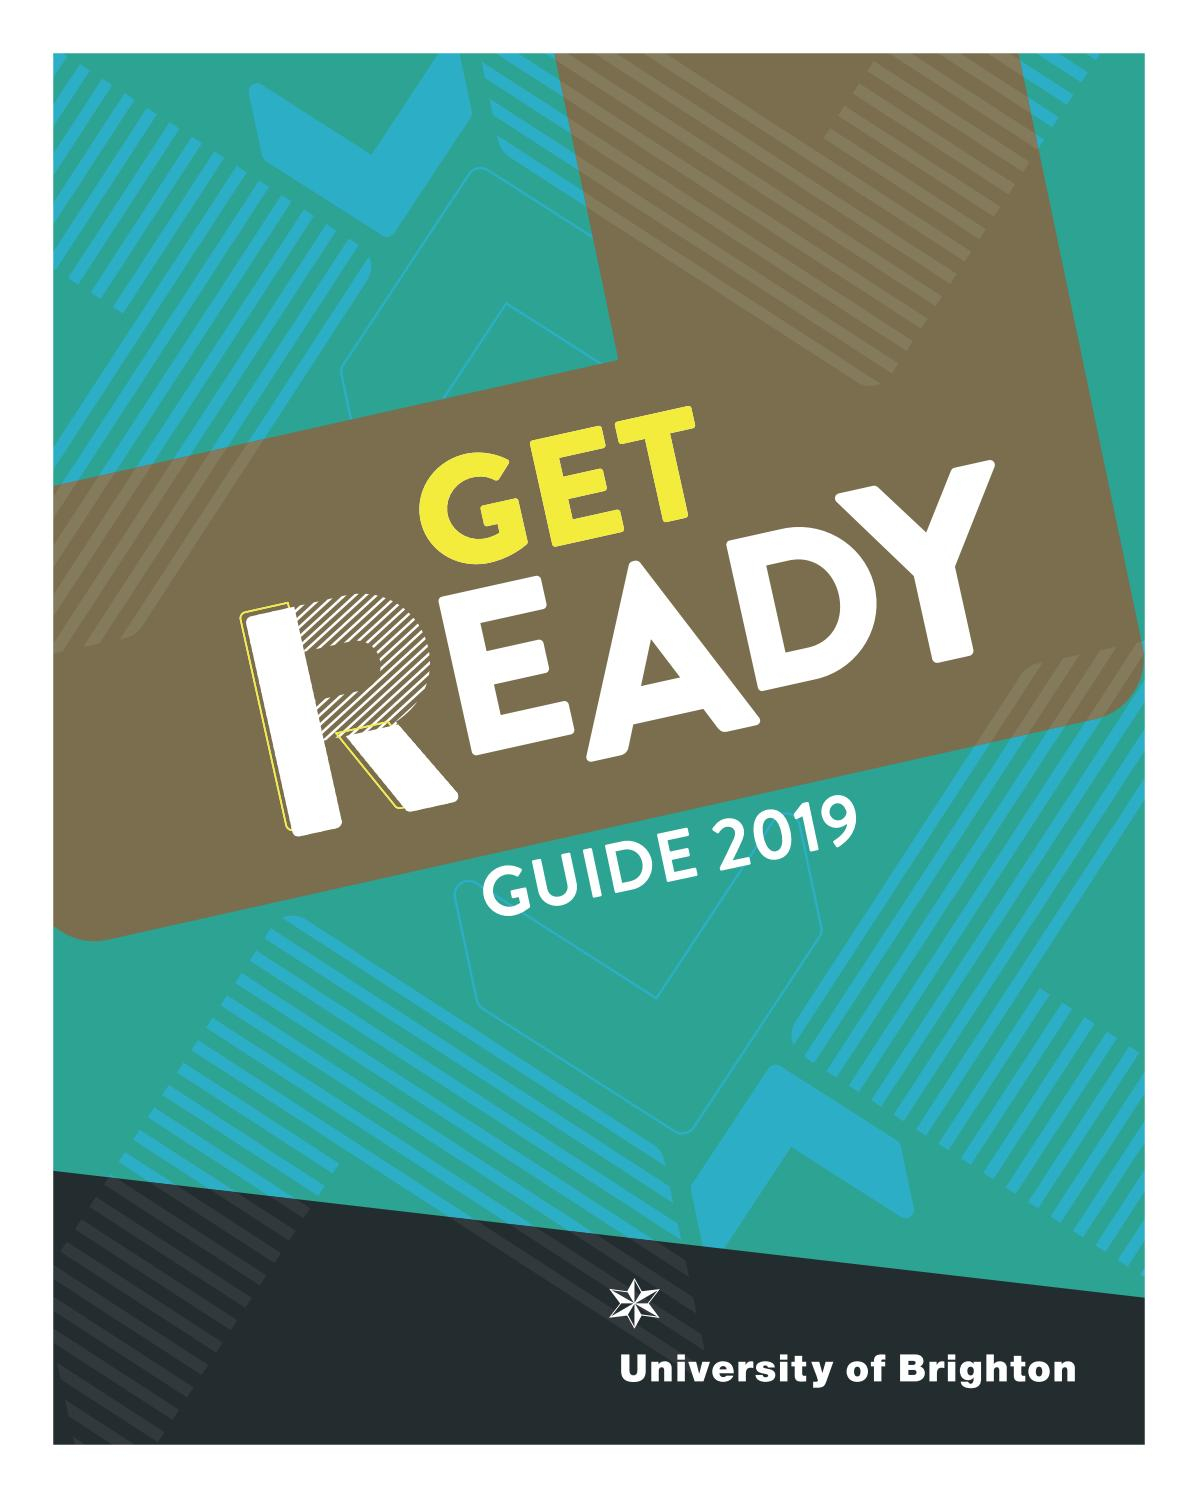 Get Ready Guide 2019University Of Brighton - Issuu with regard to Nus 2019-2020 Term Start Date